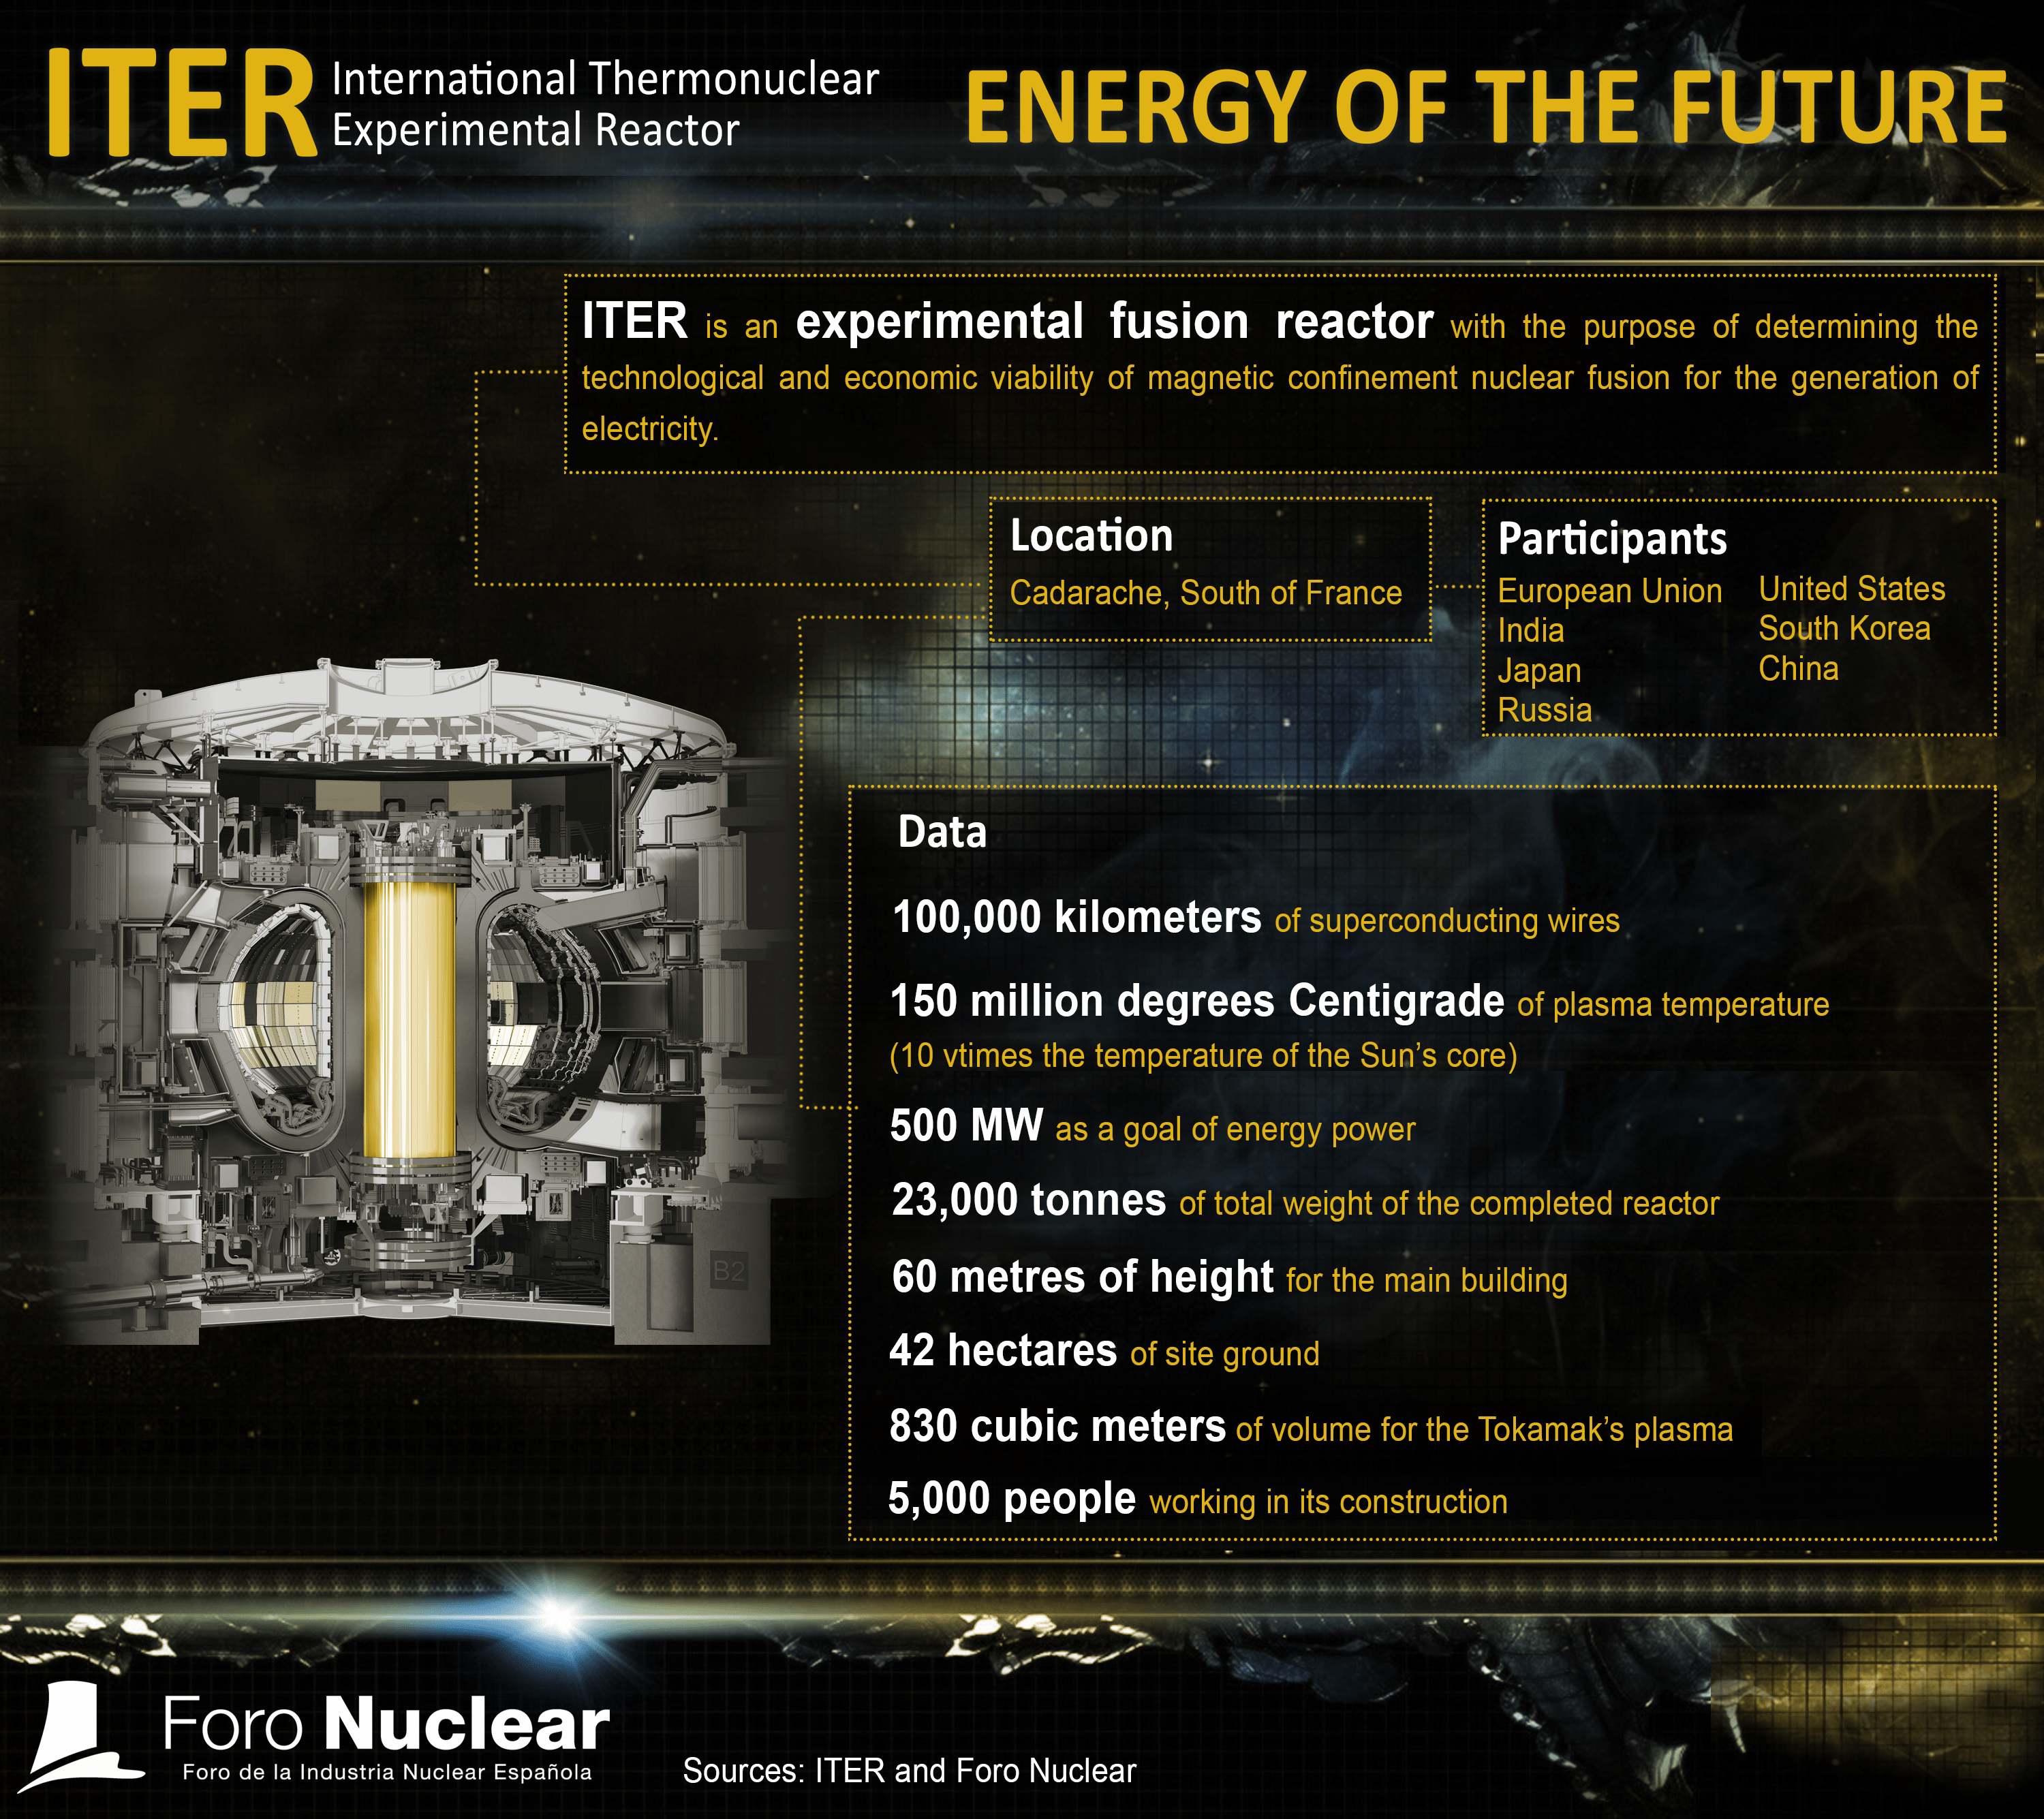 ITER, the energy of the future